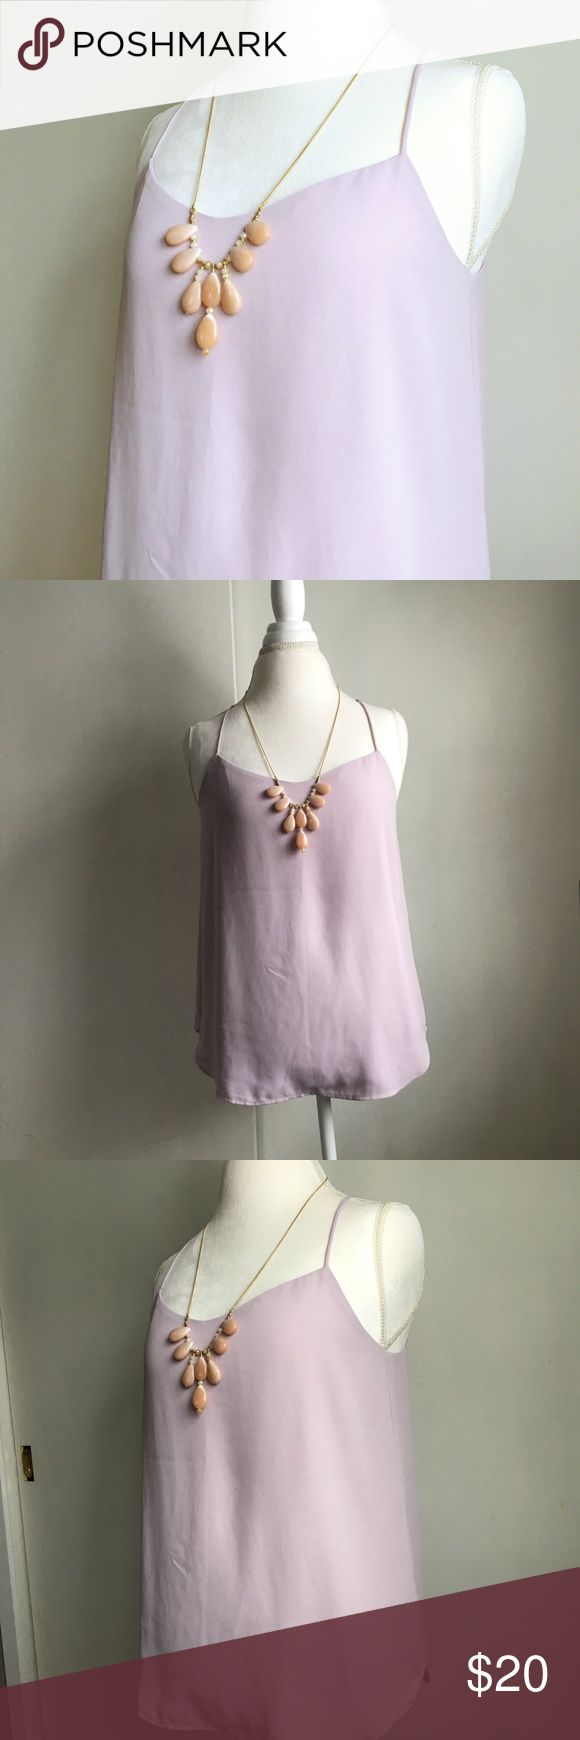 loft lavender racer back cami Ann Taylor LOFT lavender racer back  cami. Skinny straps, flowy fit. Size small. Worn just a couple times and in excellent condition. / Ann Taylor, AT, LOFT, outlet, cami, blouse, top, tank, shirt, layer, layered, lavender, purple, racer back, razor back, straps, spaghetti strap, strappy / LOFT Tops